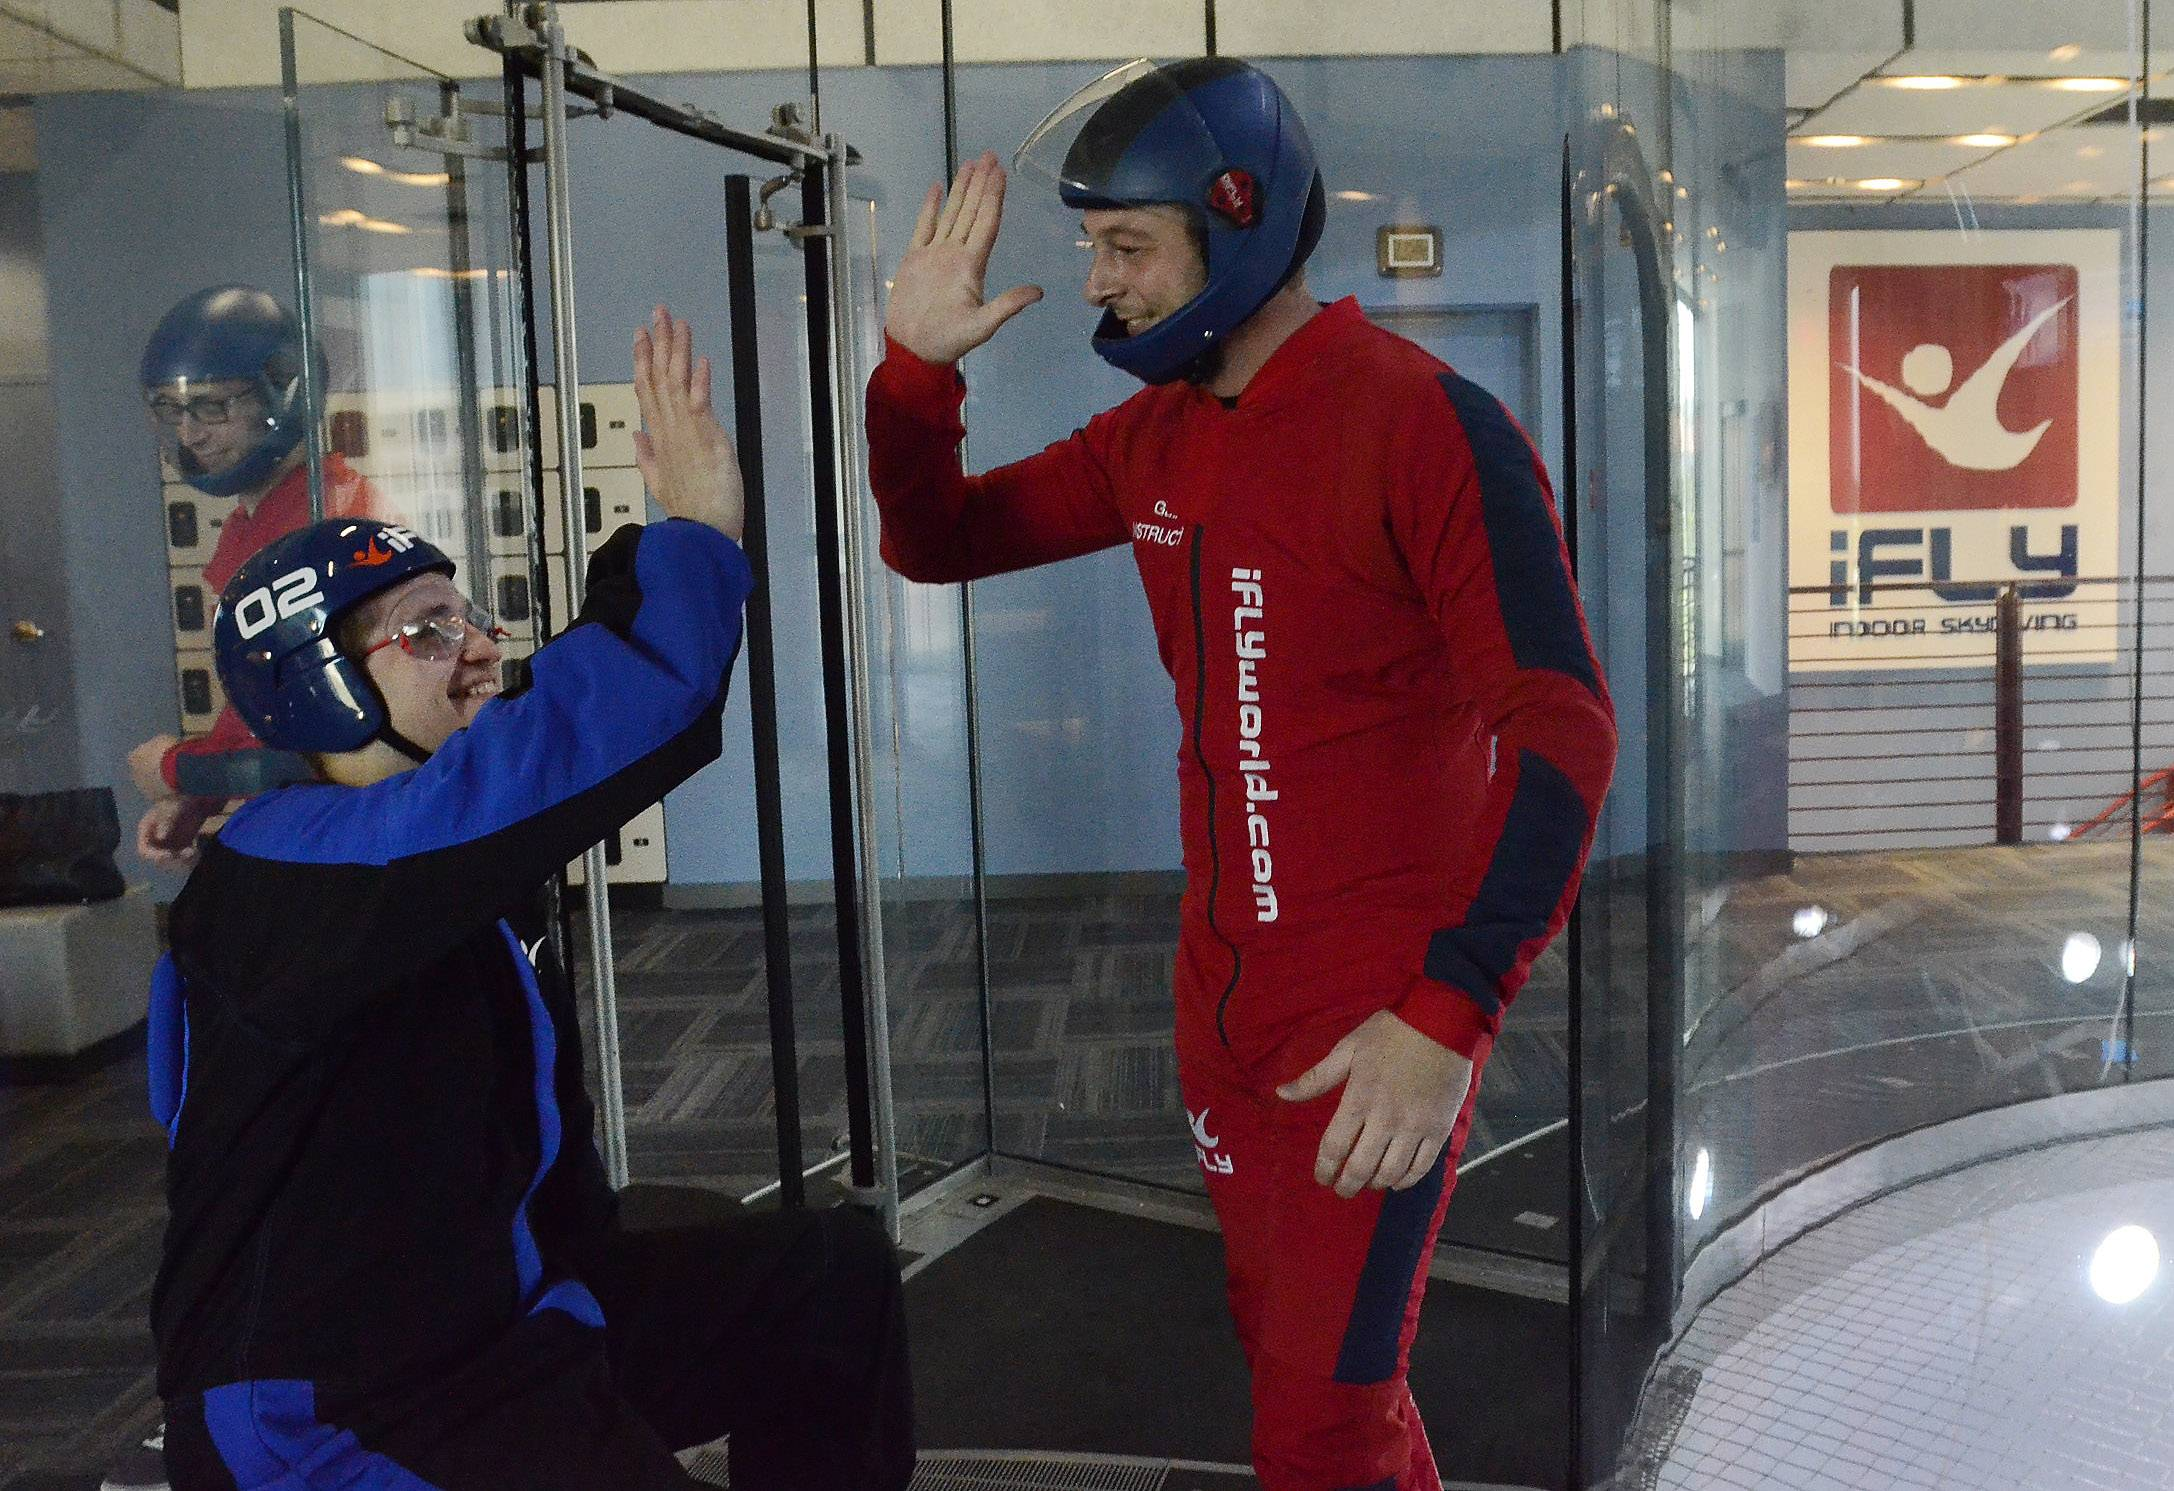 Daily Herald reporter Chris Placek is congratulated by instructor Gabriel Roth after taking an indoor sky diving flight at iFLY in Rosemont.